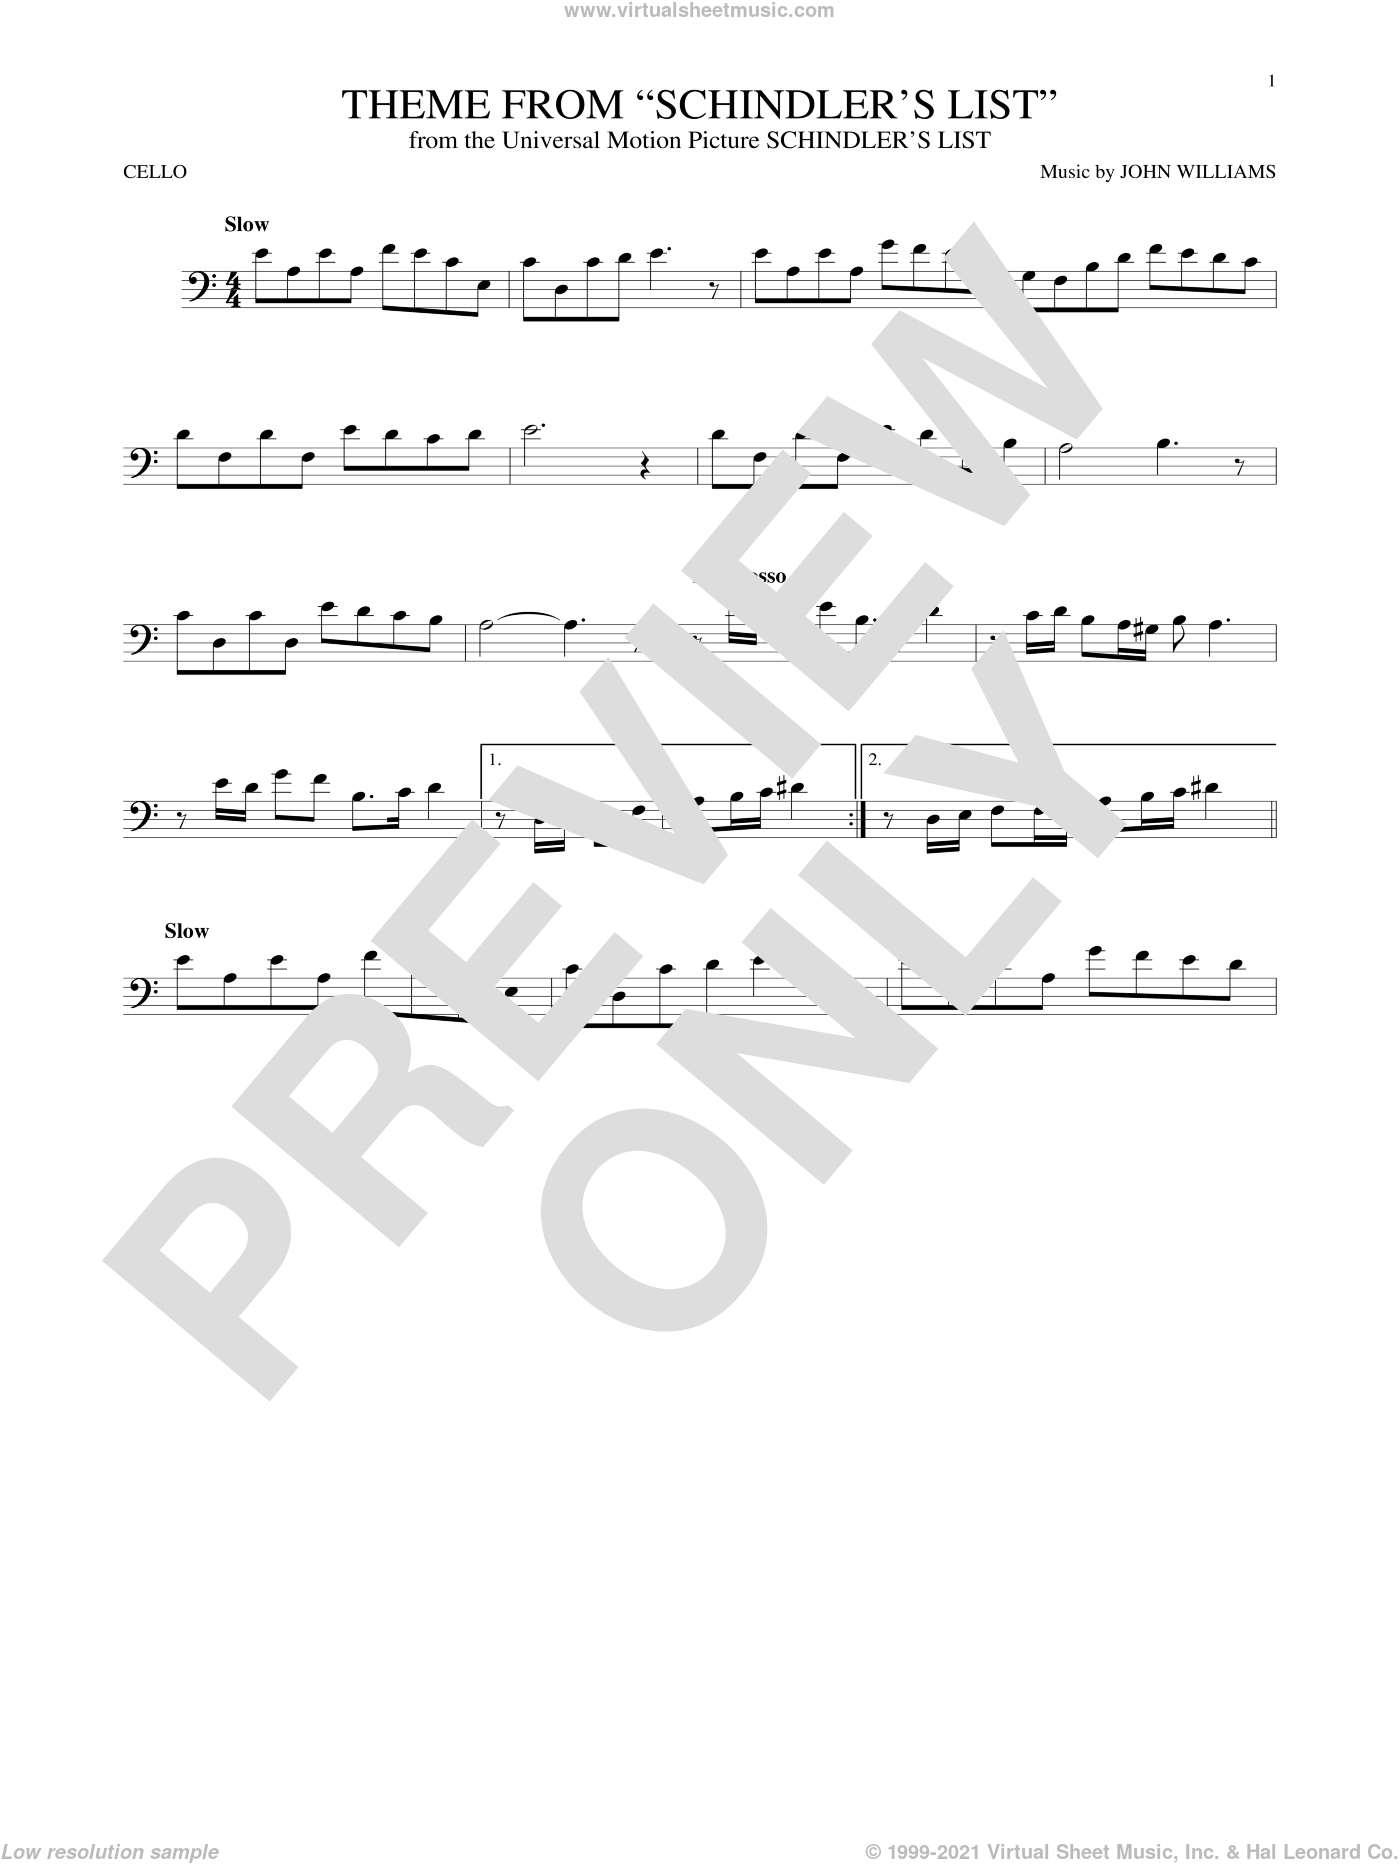 Theme From Schindler's List sheet music for cello solo by John Williams, intermediate skill level